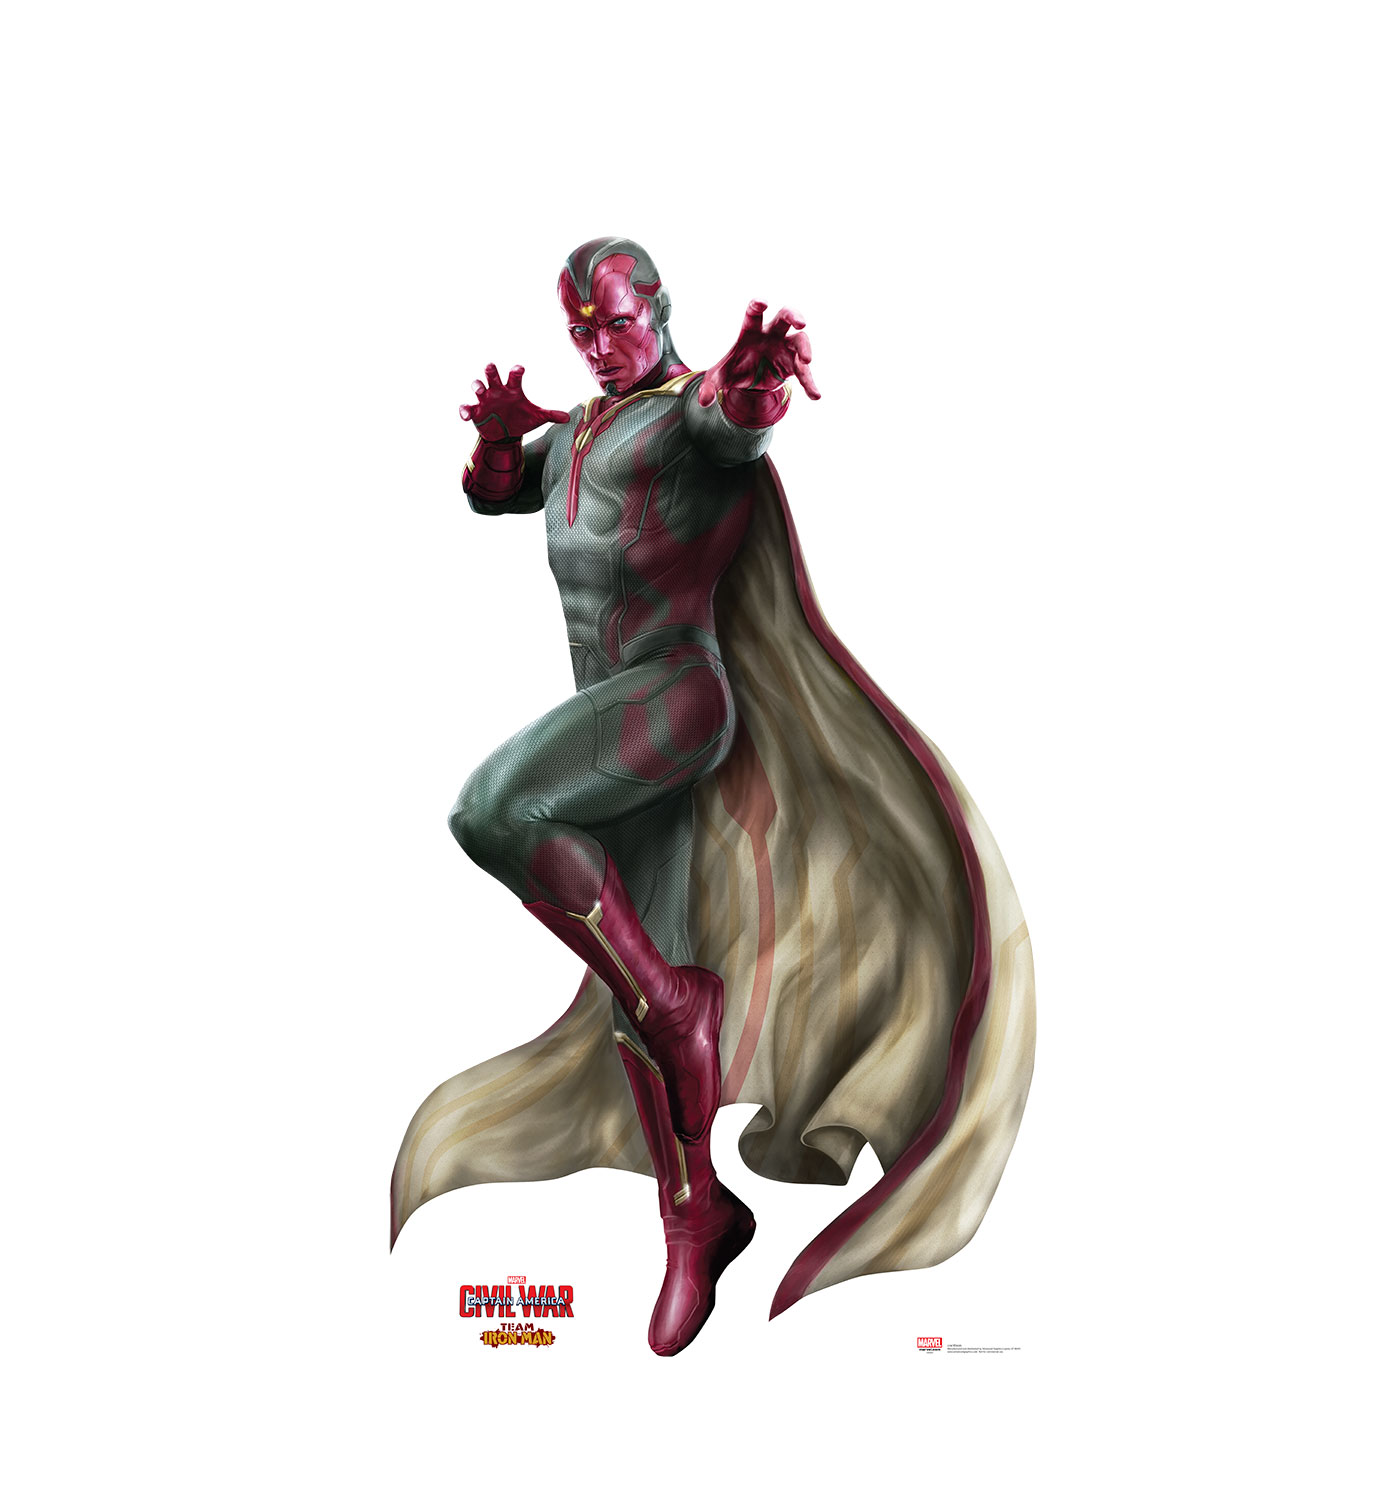 captain-america-civil-war-artwork-vision-1